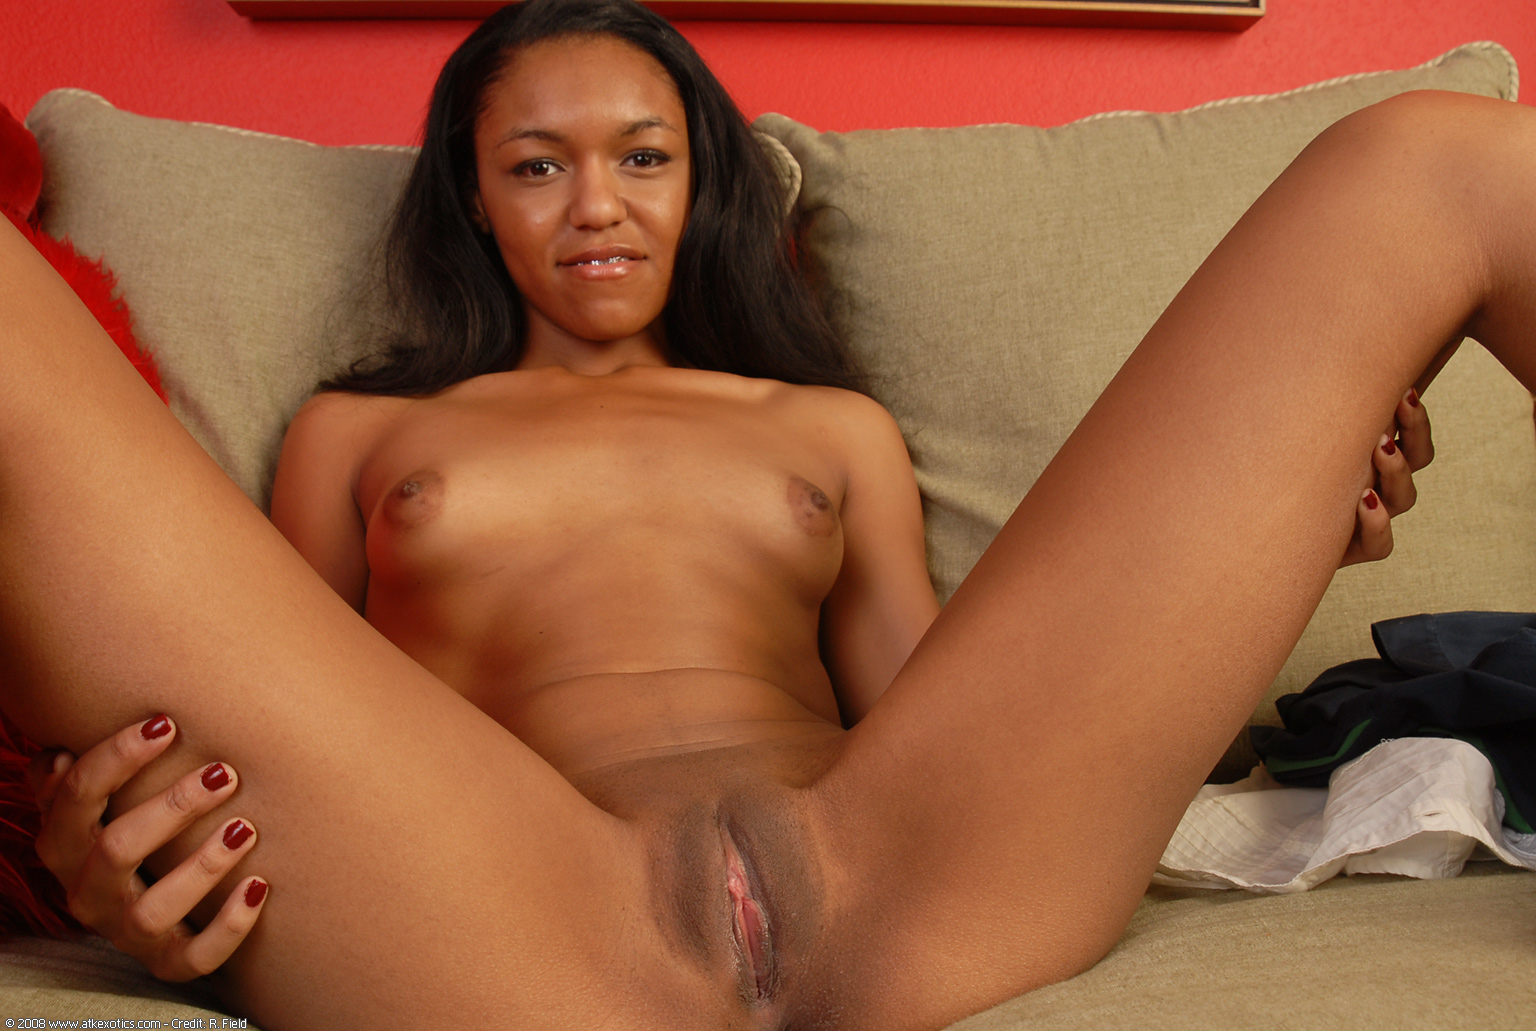 Black girls with cameltoe nude #3